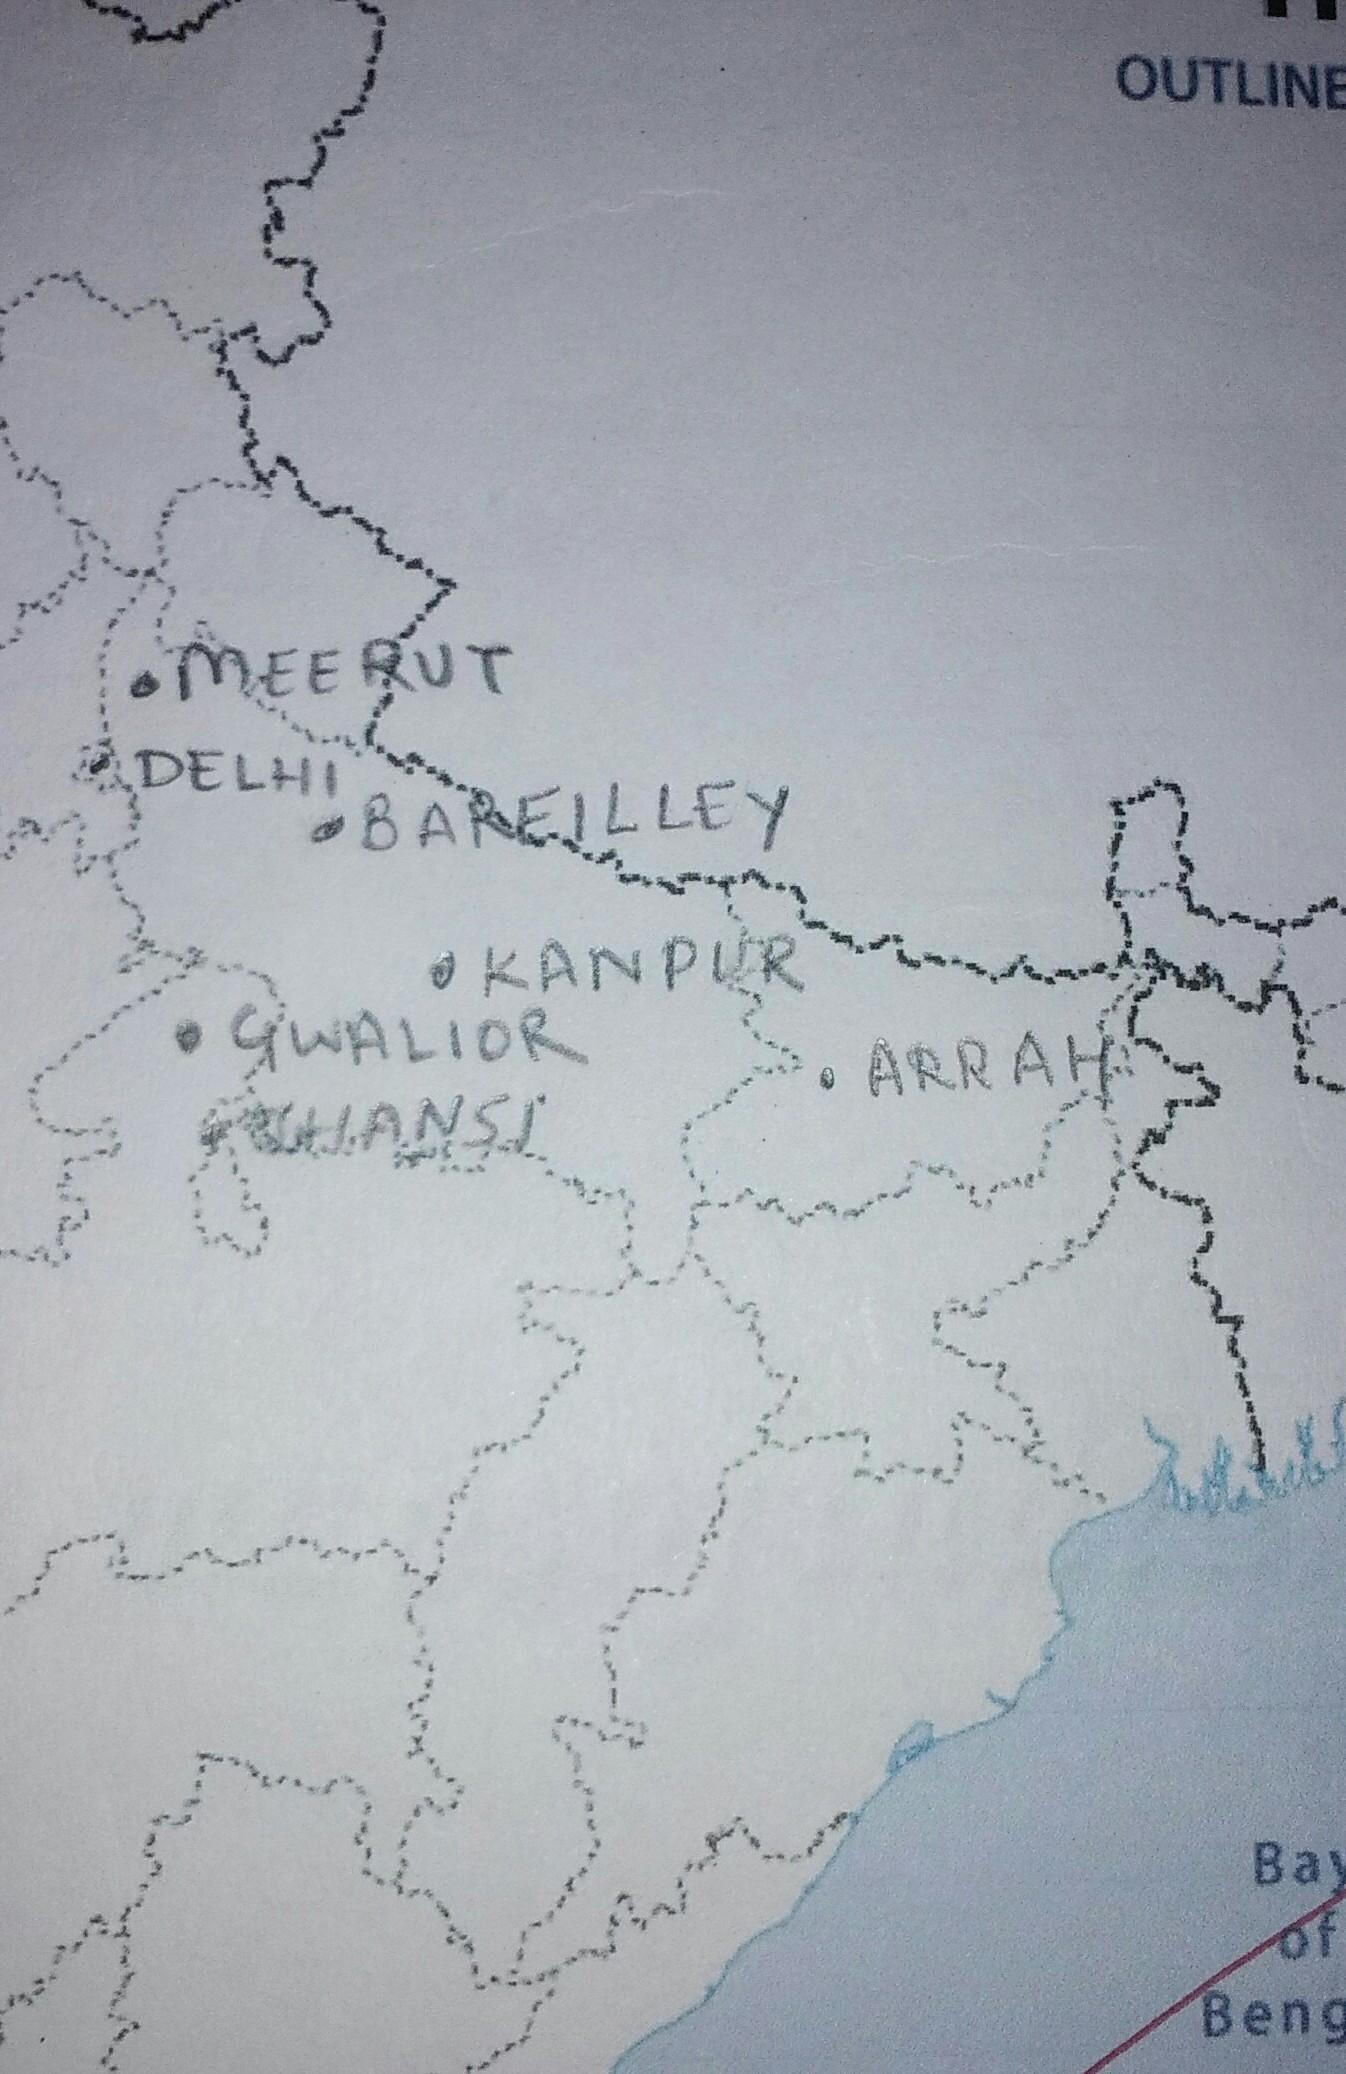 location gwalior in india map Locate Following States On India Political Brainly In location gwalior in india map